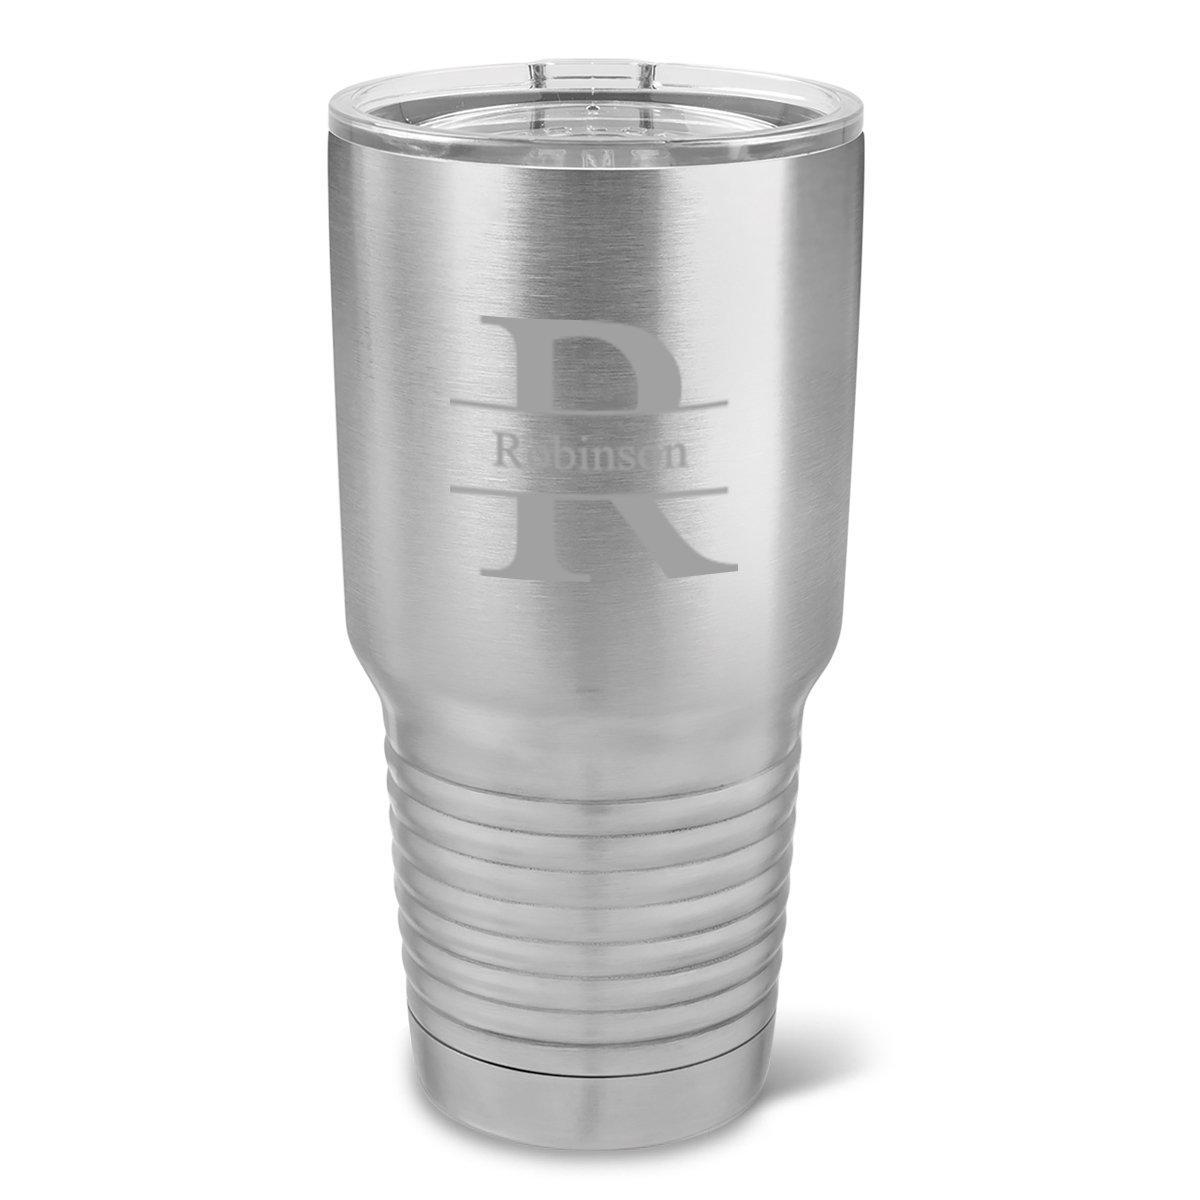 This 30 oz. Stainless Silver Double Wall Insulated Tumbler comes with a sealed lid to prevent spills and vacuum insulation to keep your drink at your preferred temperature.